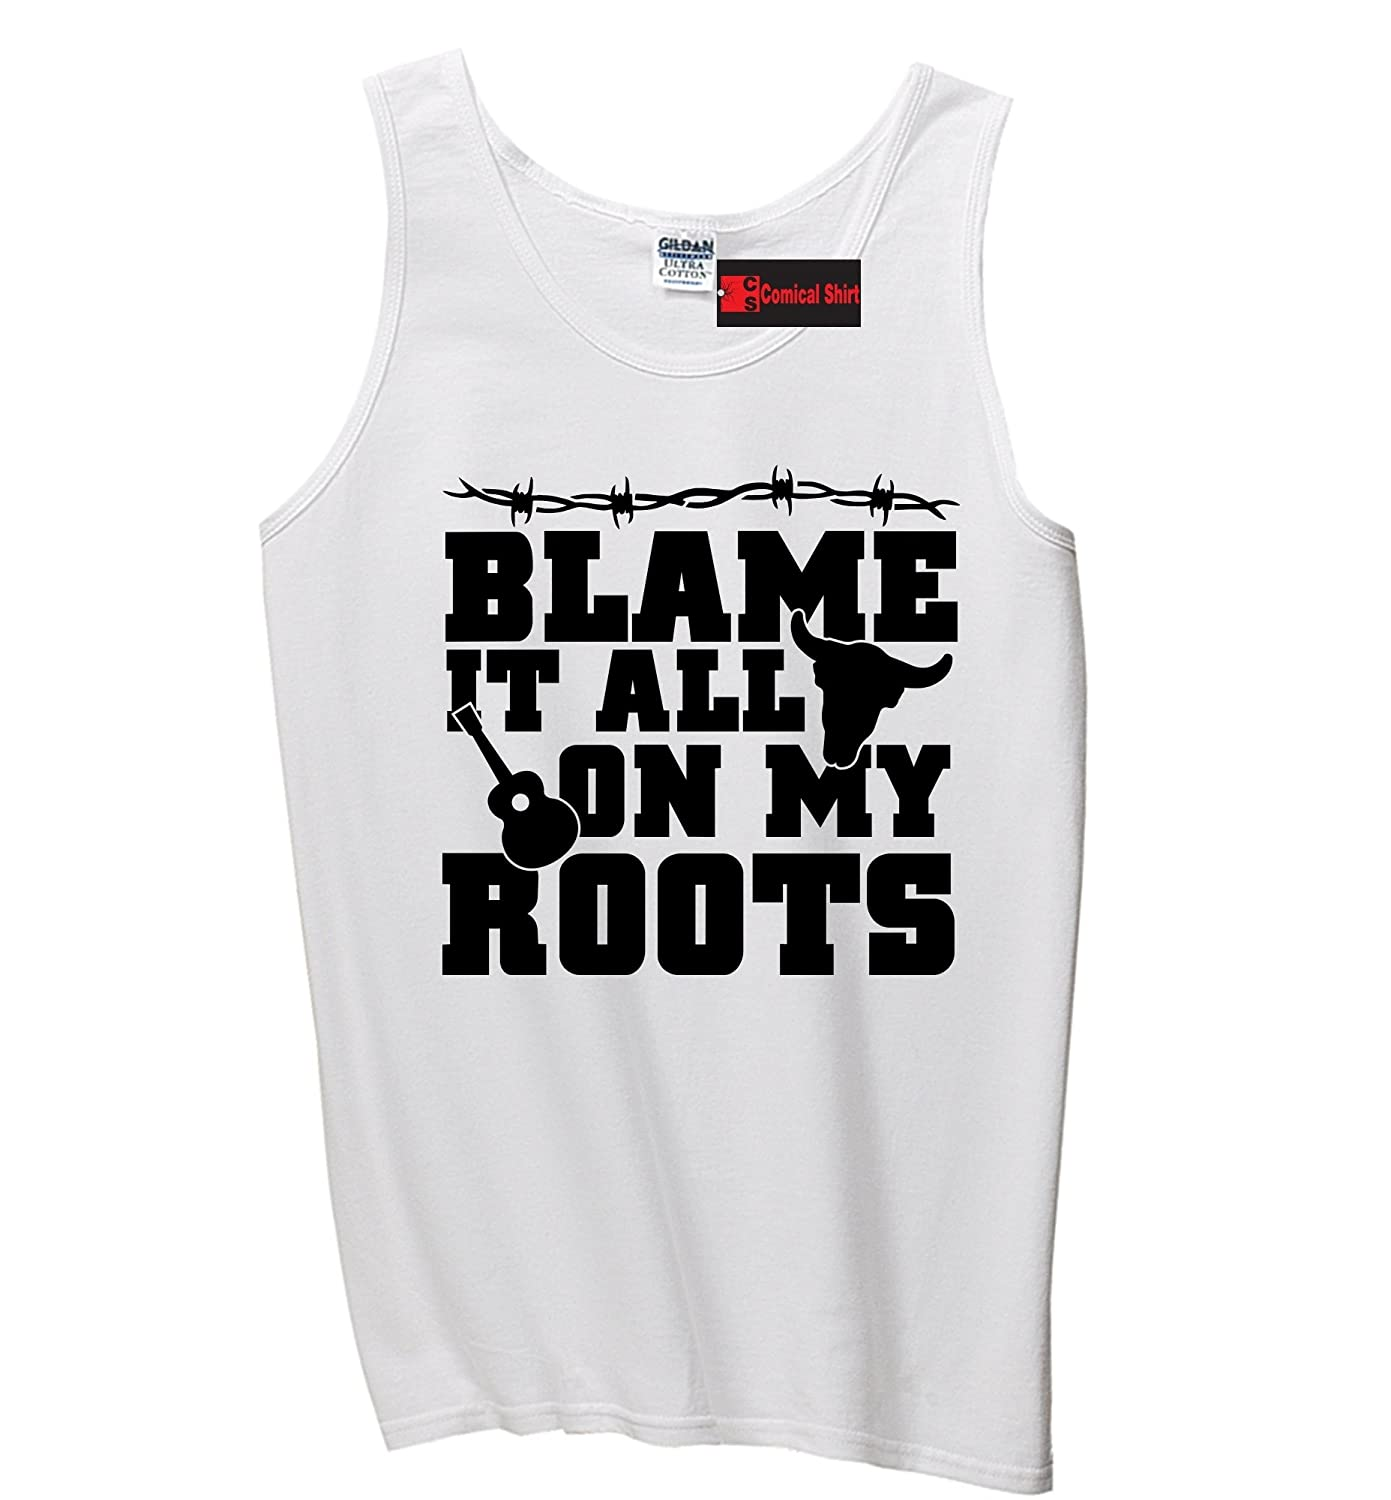 Nice Comical Shirt Men's Blame It All On My Roots Country Music Southern Tank Top for sale